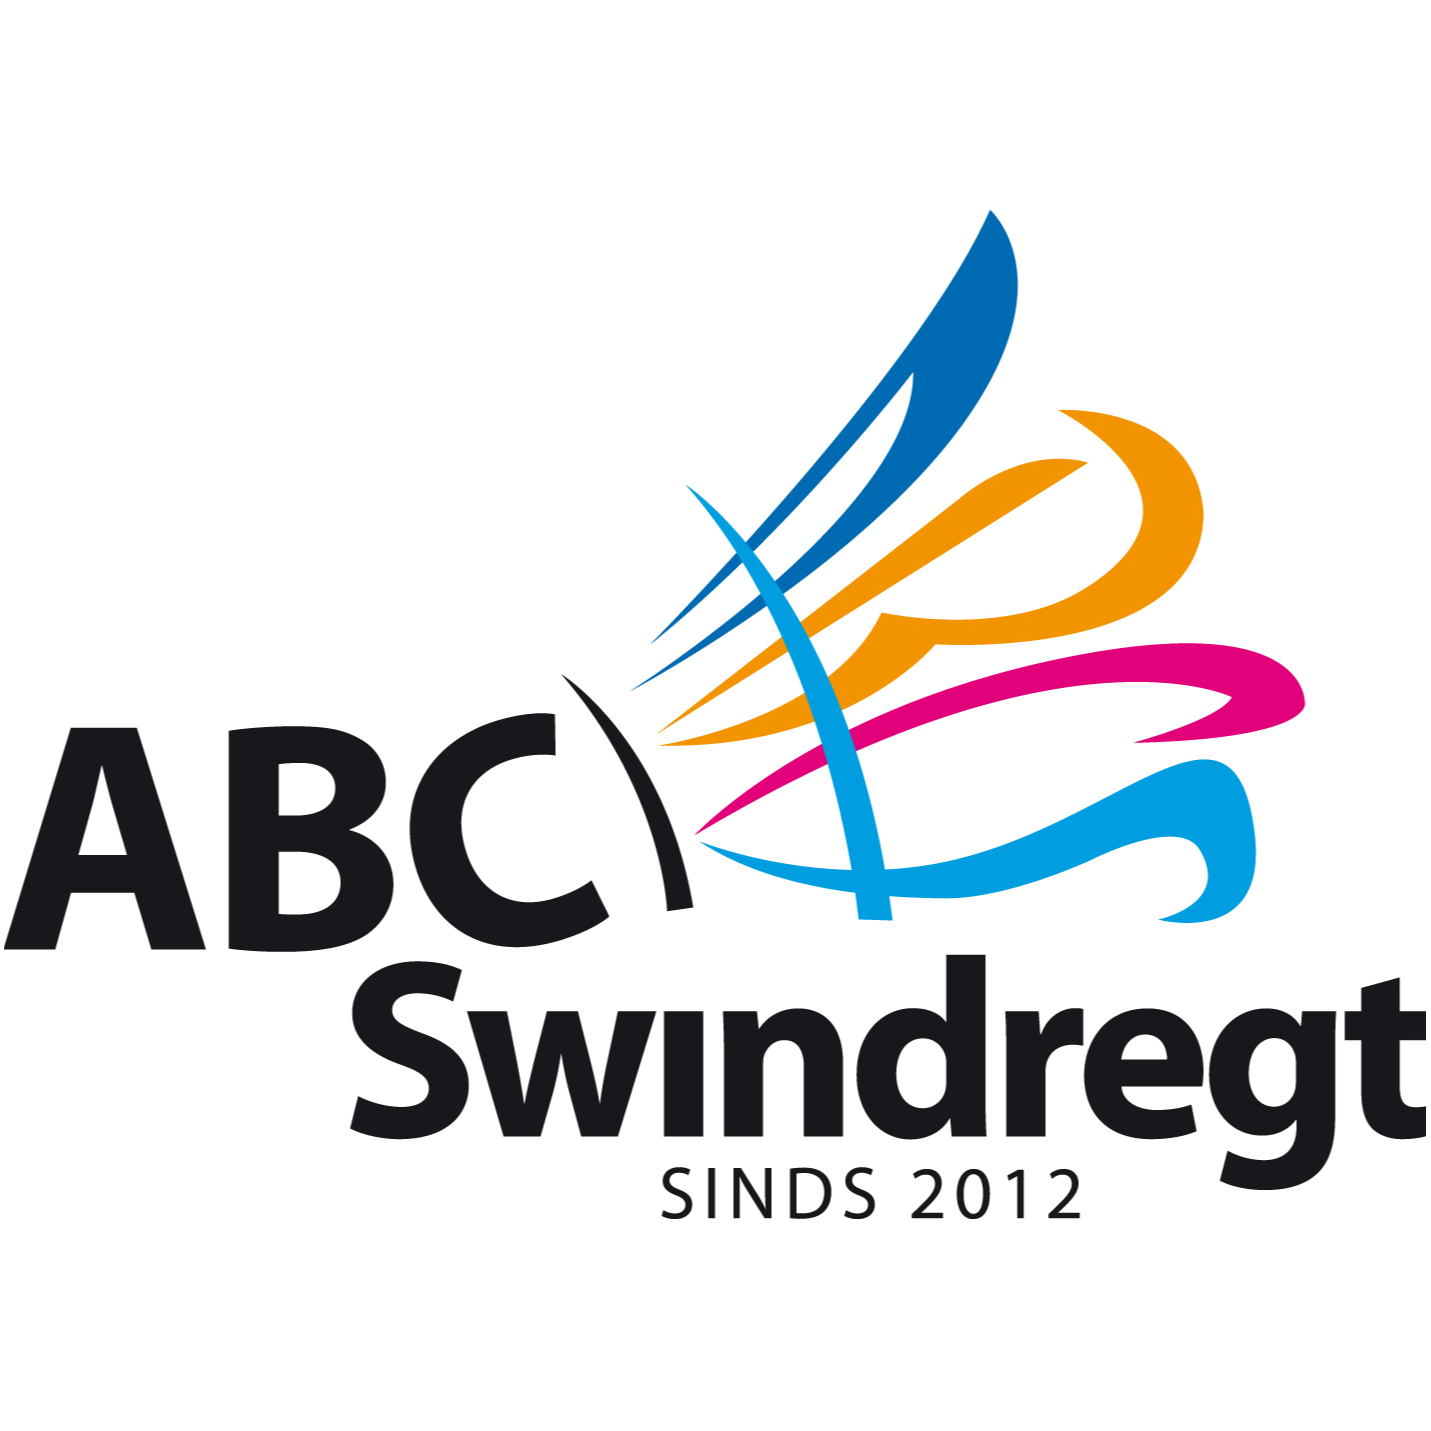 ABC-Swindregt